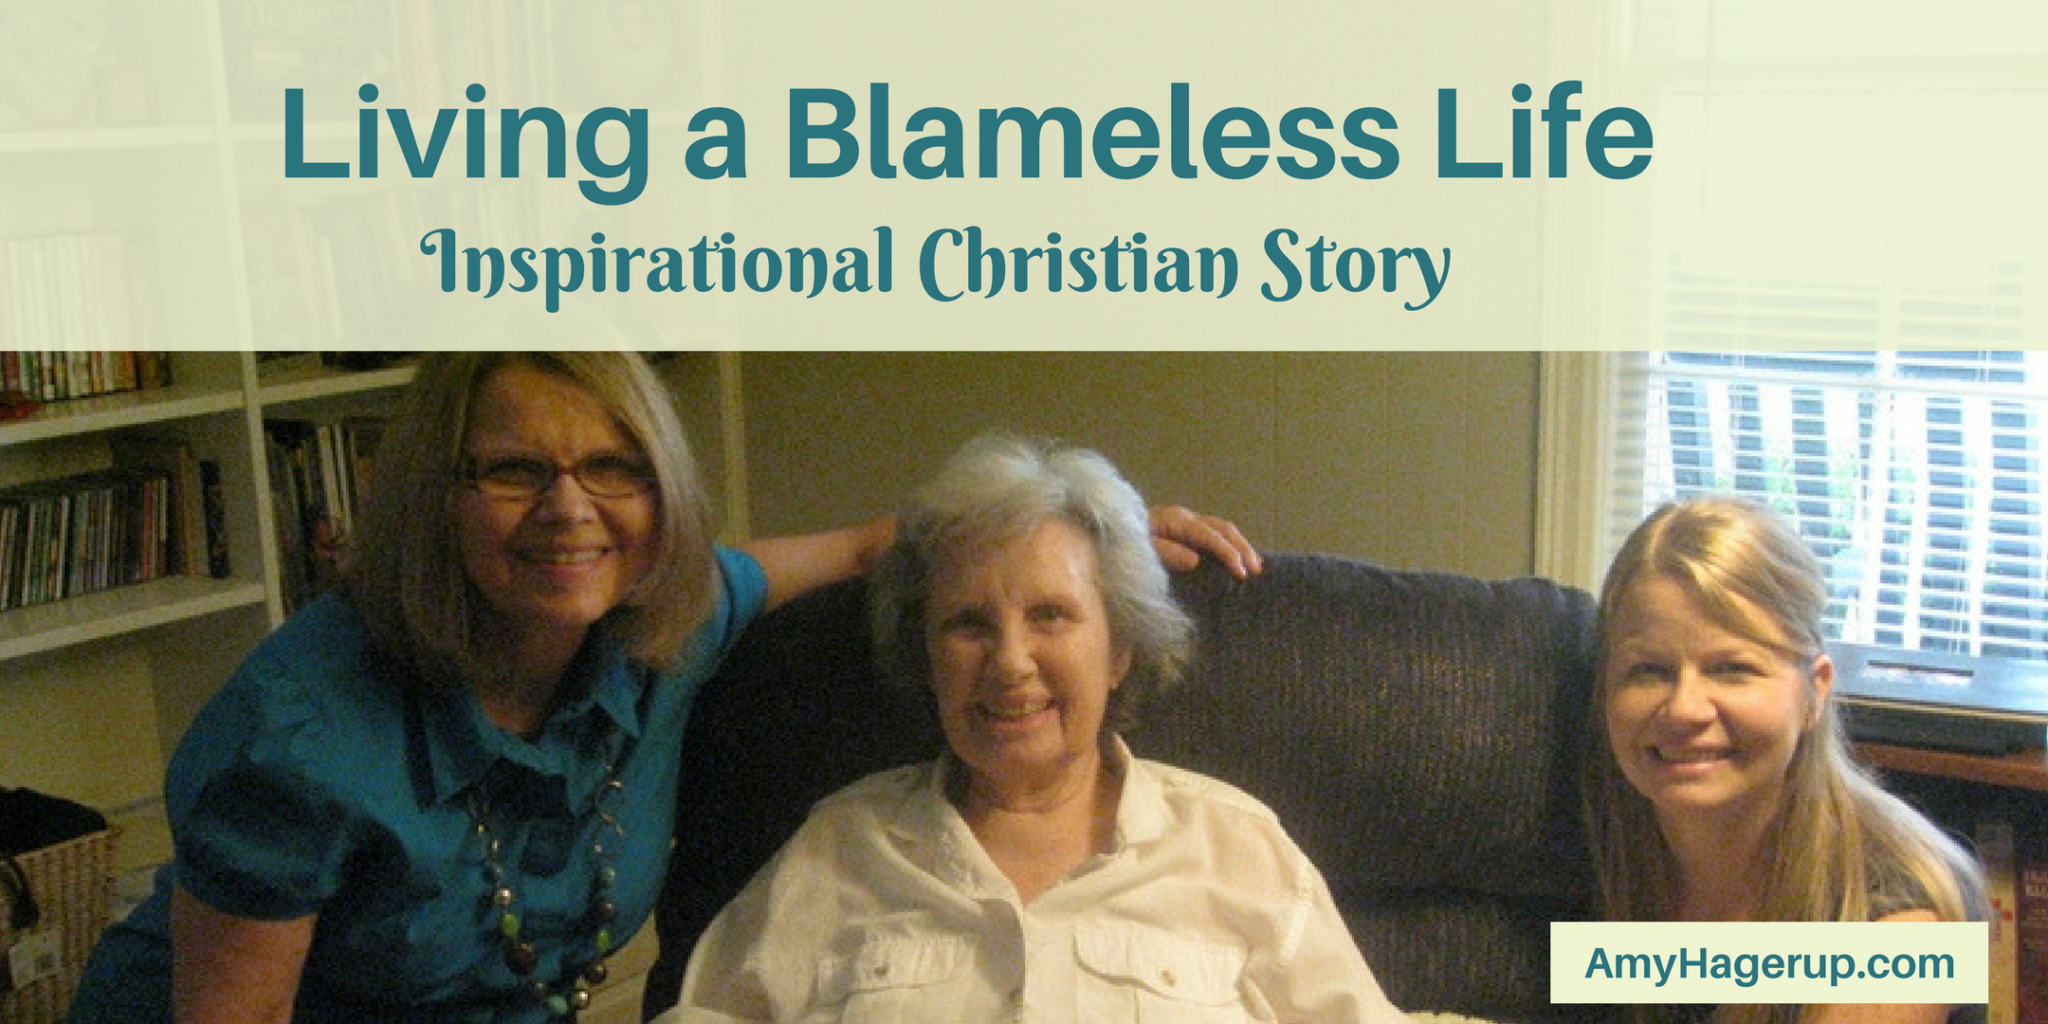 Here is an inspirational Christian story about living a blameless life.